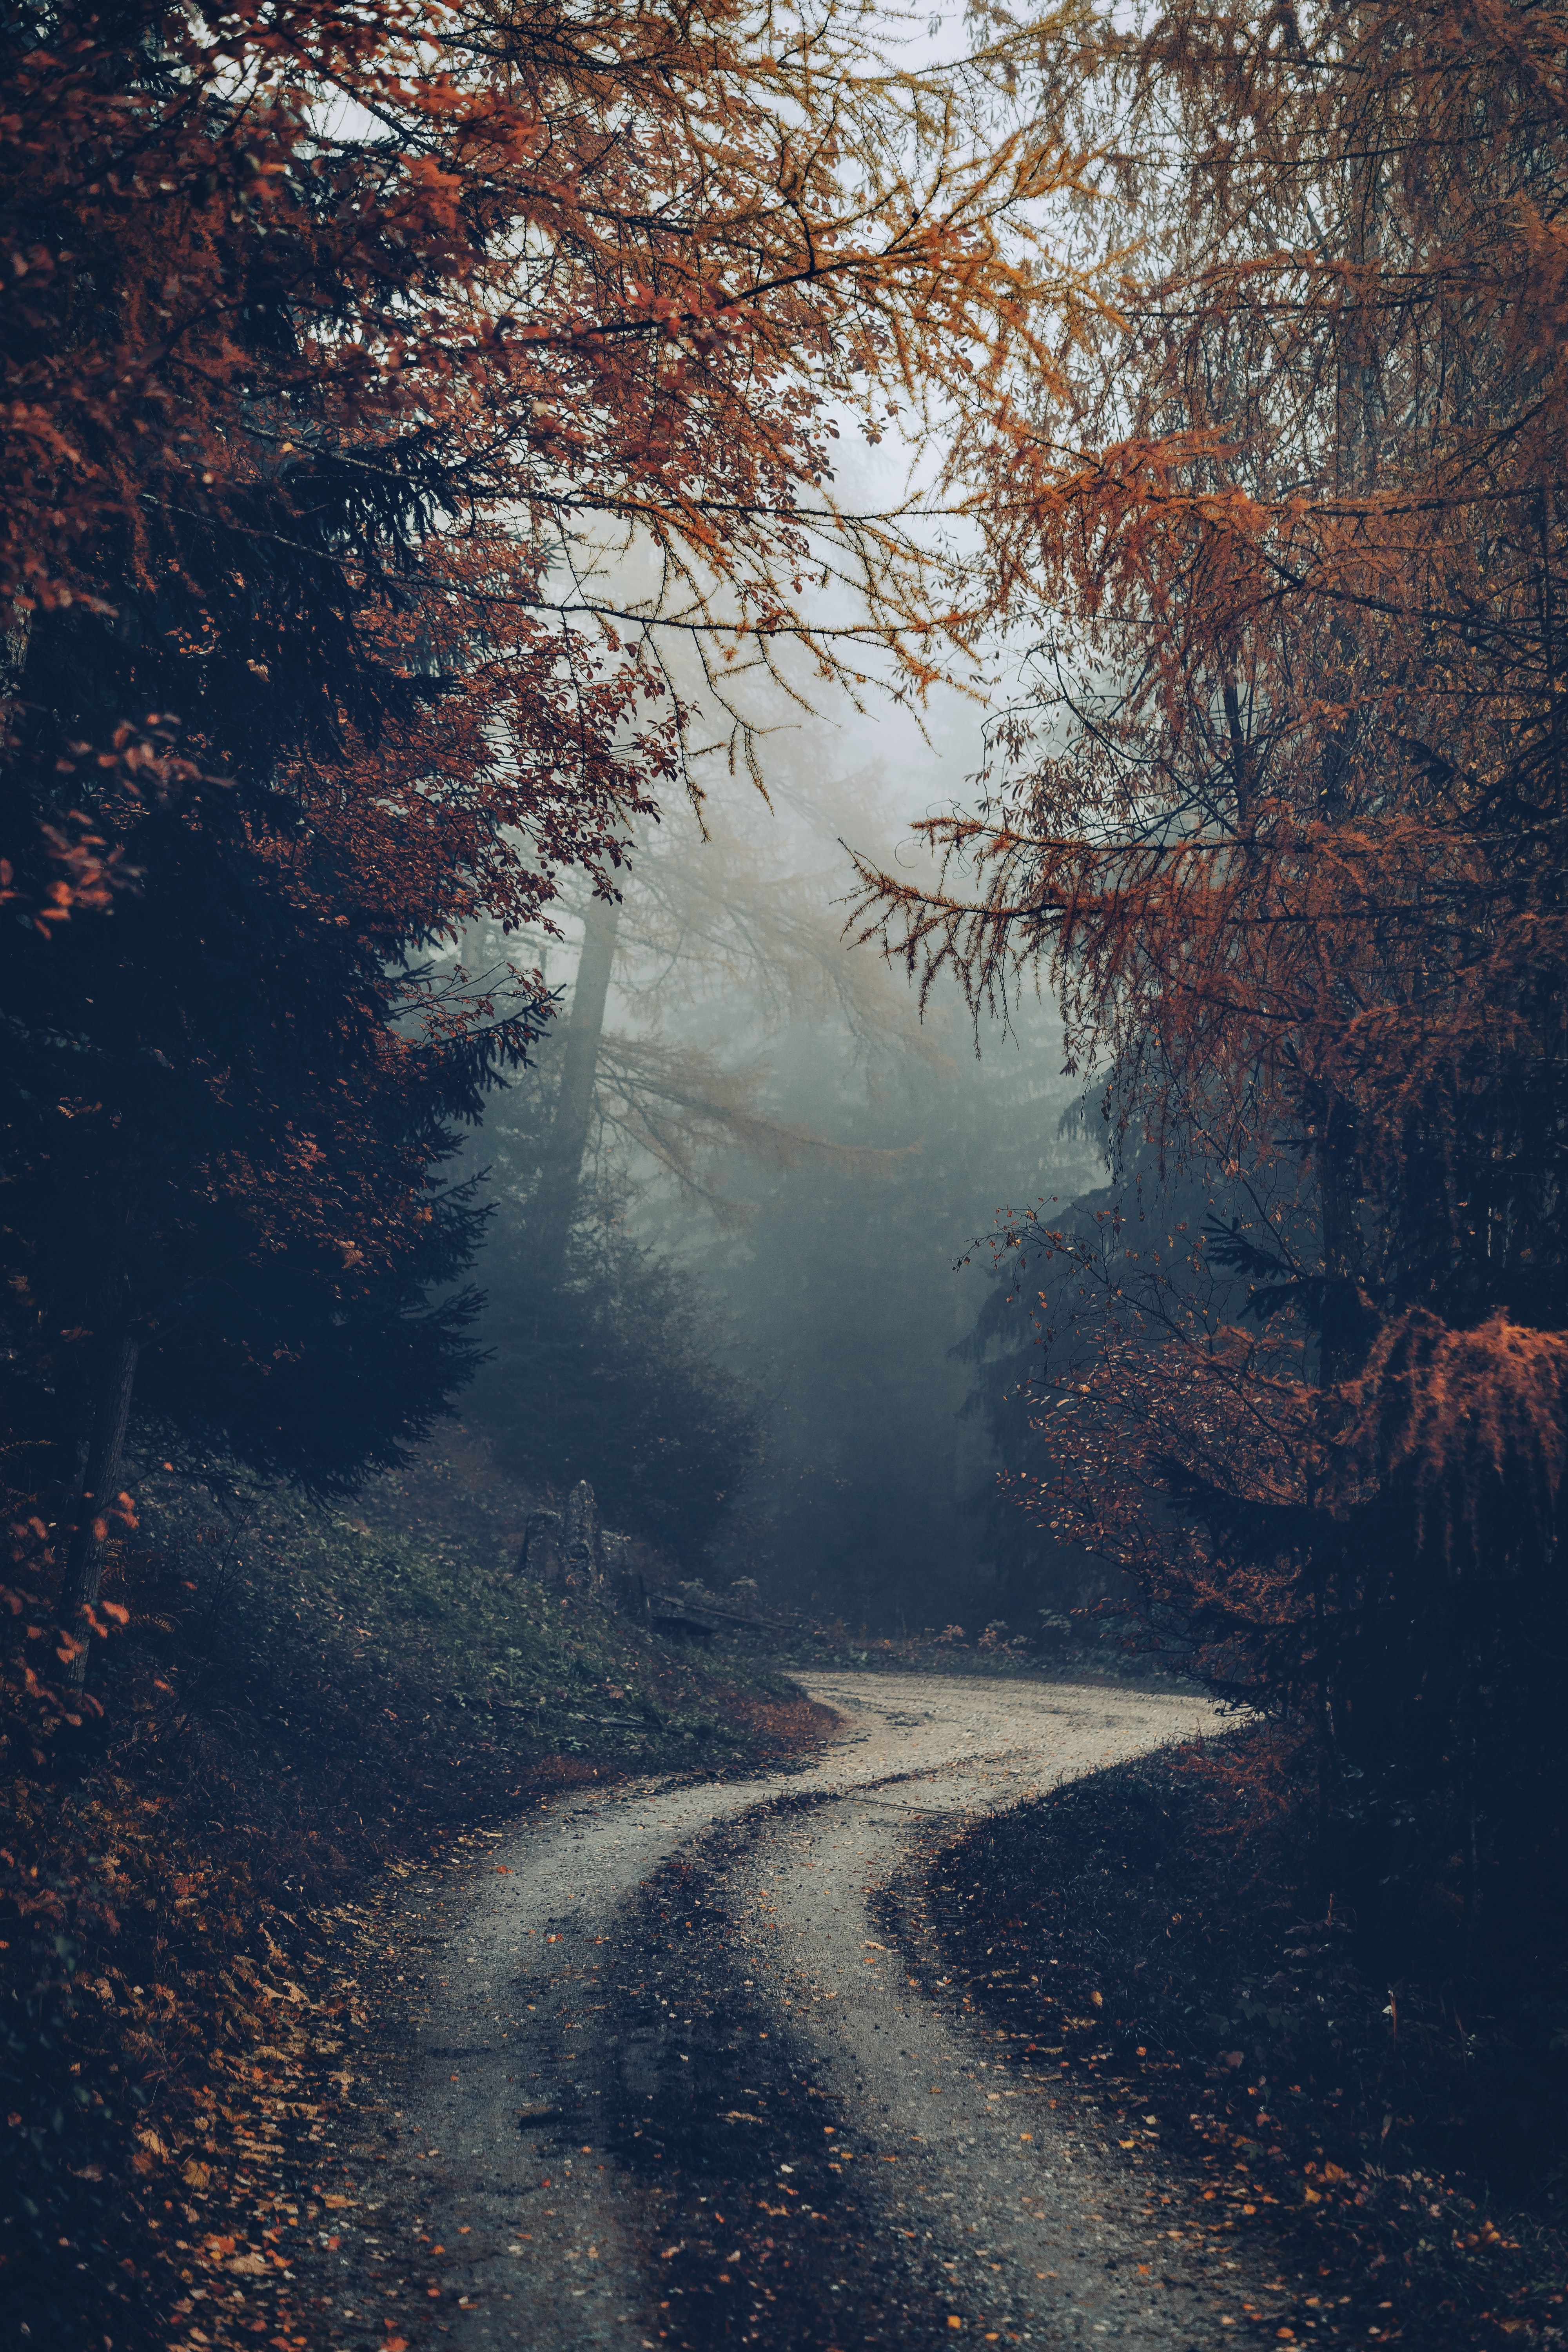 144756 free wallpaper 480x800 for phone, download images Nature, Trees, Autumn, Road, Forest, Fog 480x800 for mobile